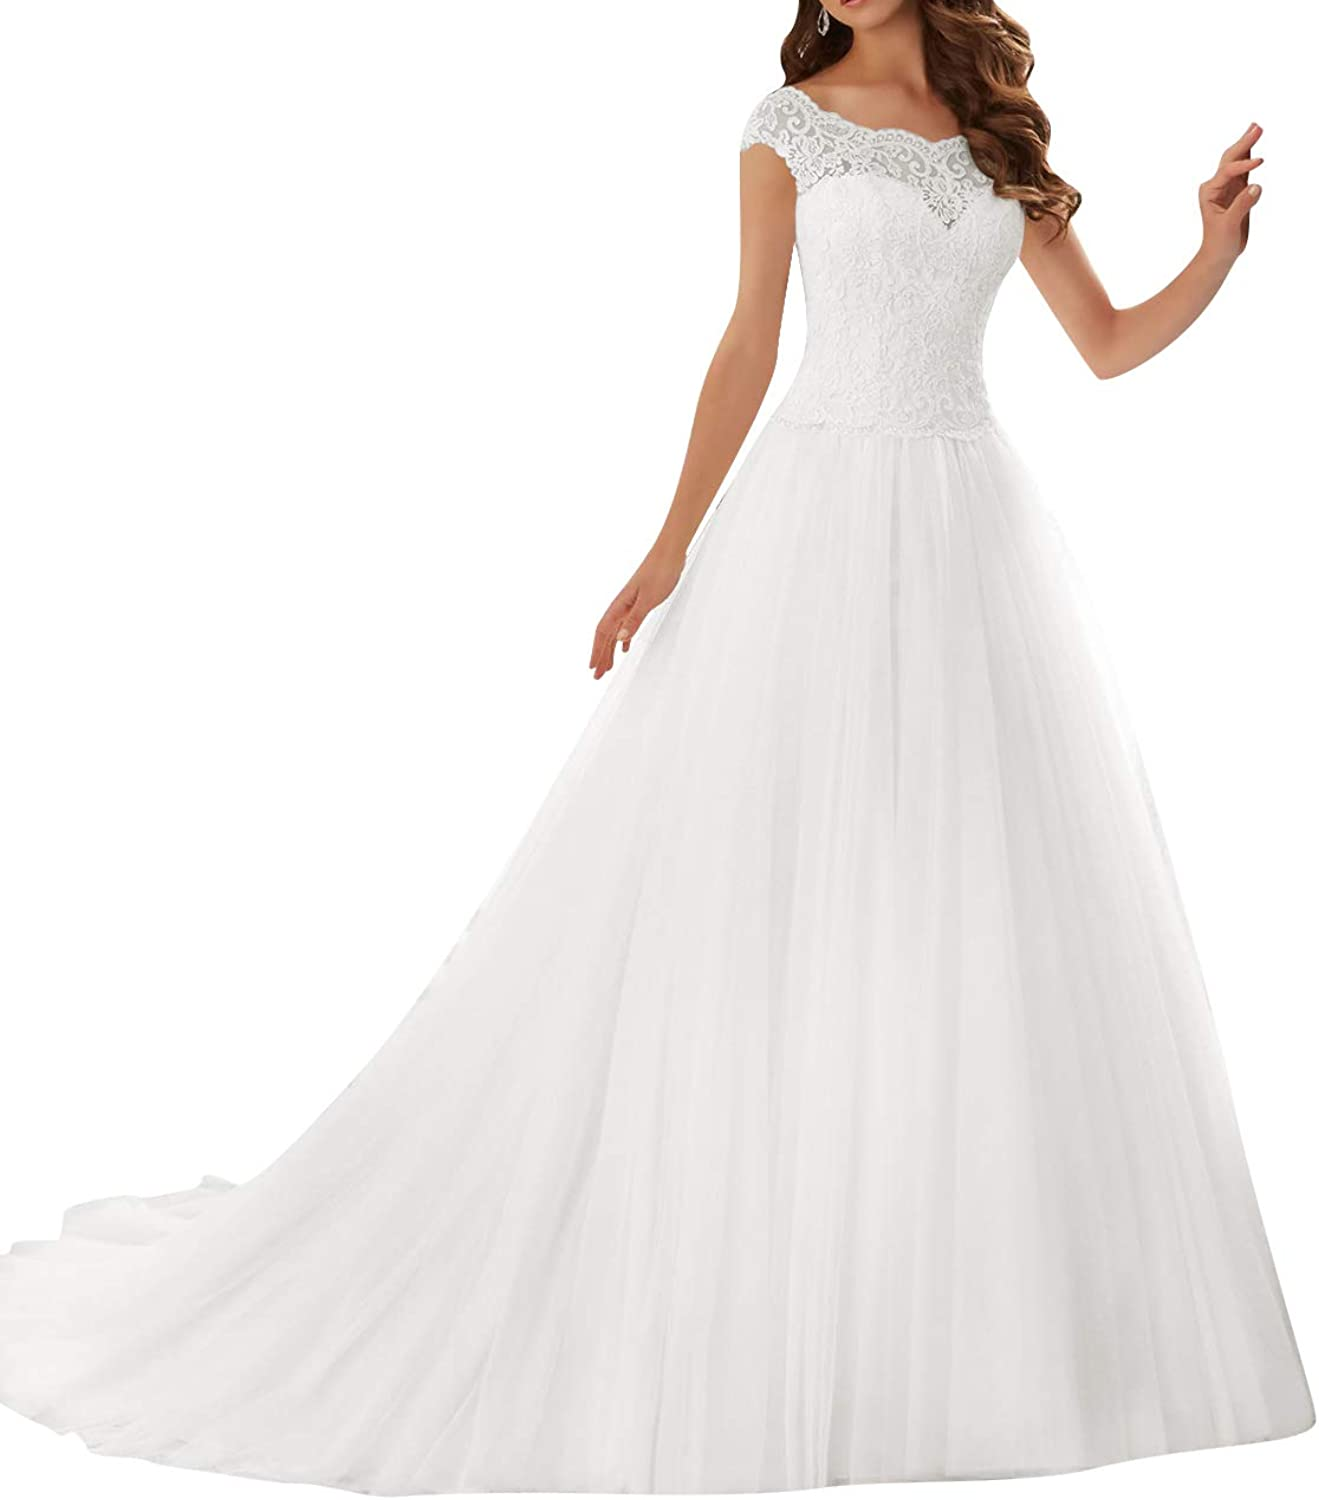 Wedding Dress Lace Bride Dresses Cap Sleeves Wedding Gown Tulle Bridal Gowns with Train